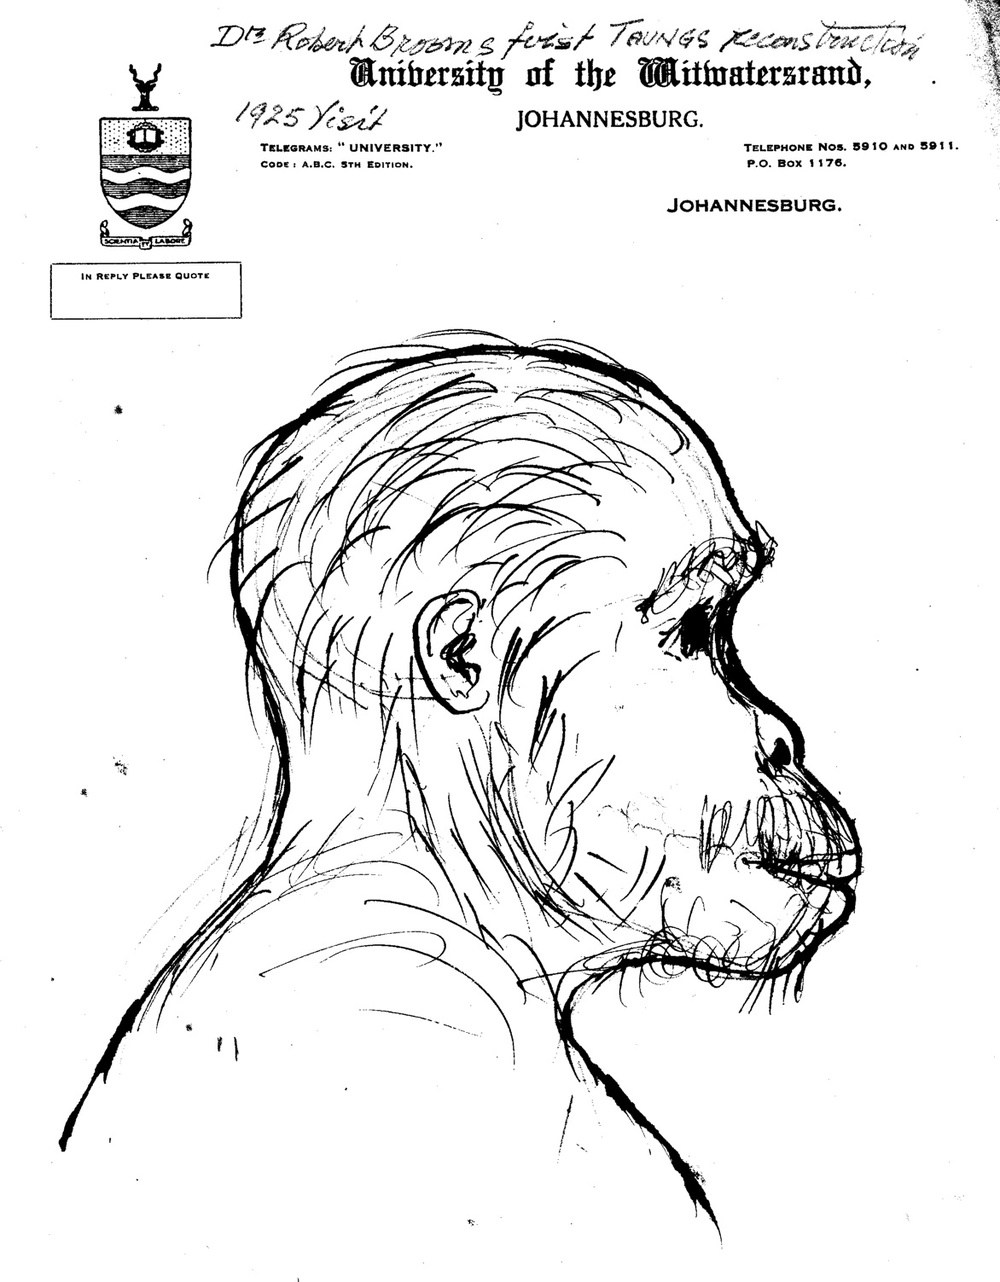 Sketch of Taung Child (aged, perhaps? post-juvenile?) from Robert Broom's 1925 visit. Courtesy of the University of Witwatersrand, Raymond Dart archive. (photo: L. Pyne)